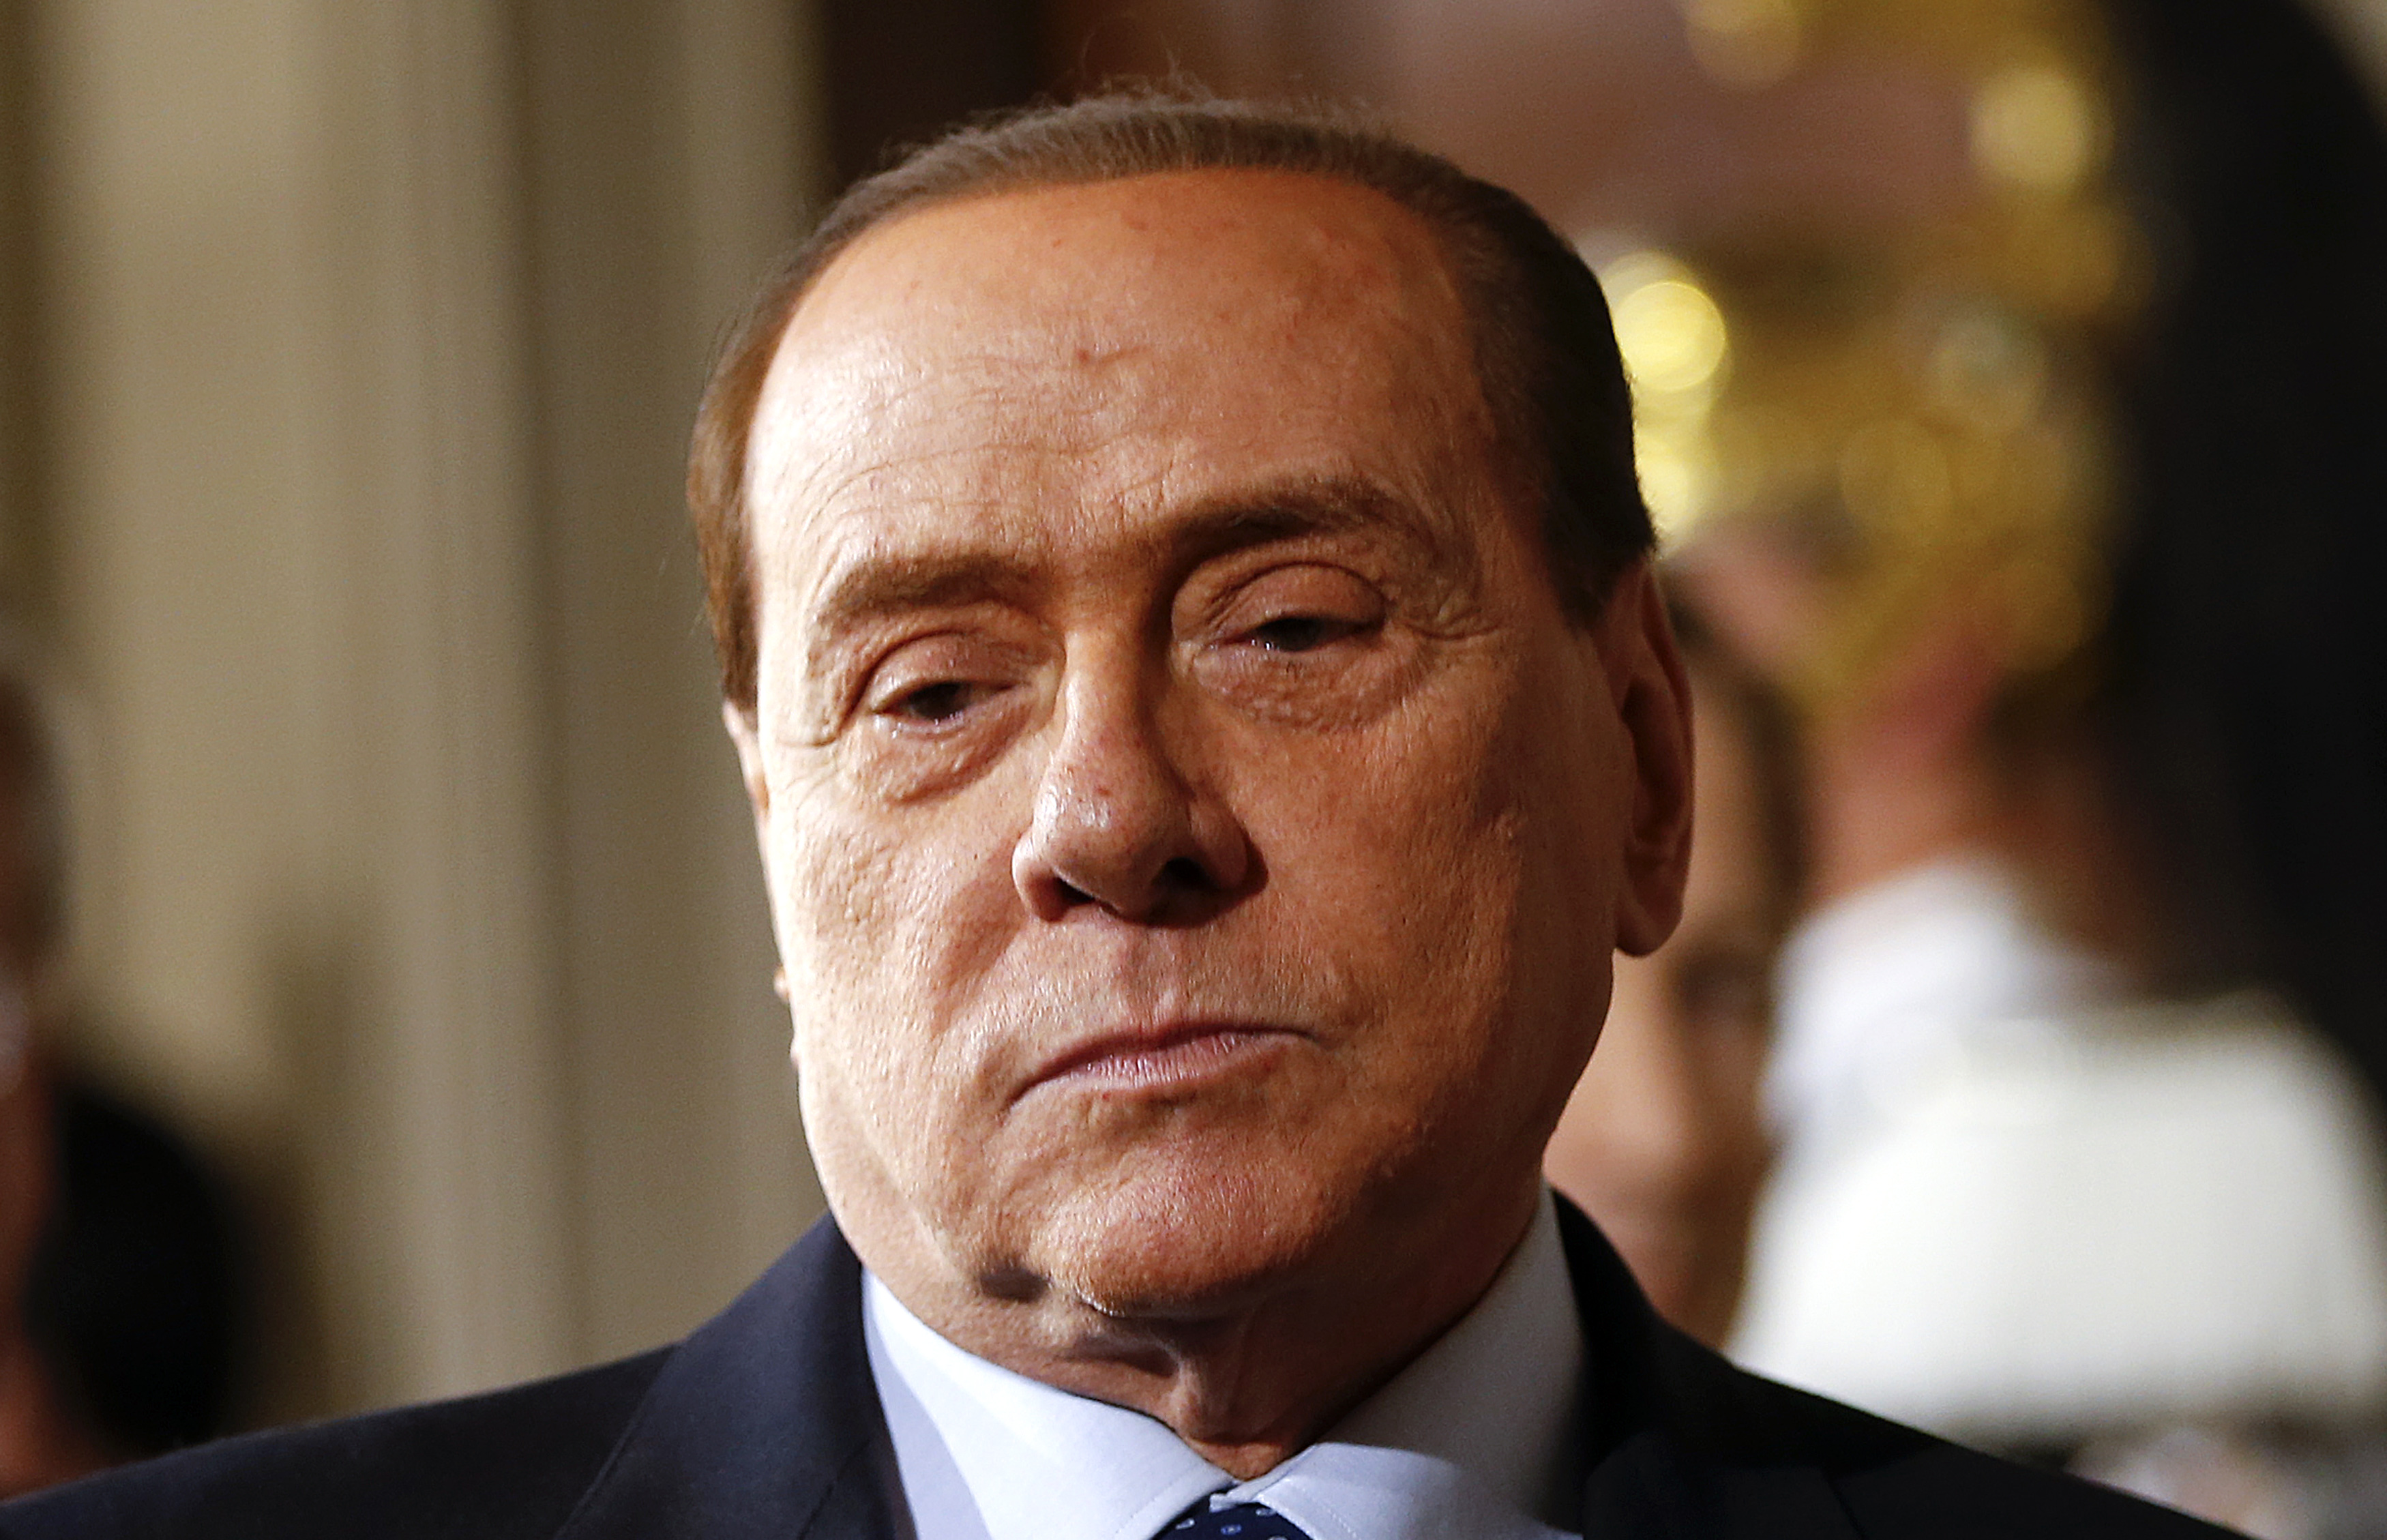 Leader of Forza Italia party Silvio Berlusconi at the end of the consultations with Italian President Giorgio Napolitano at the Quirinale Palace in Rome on Feb. 15, 2014.